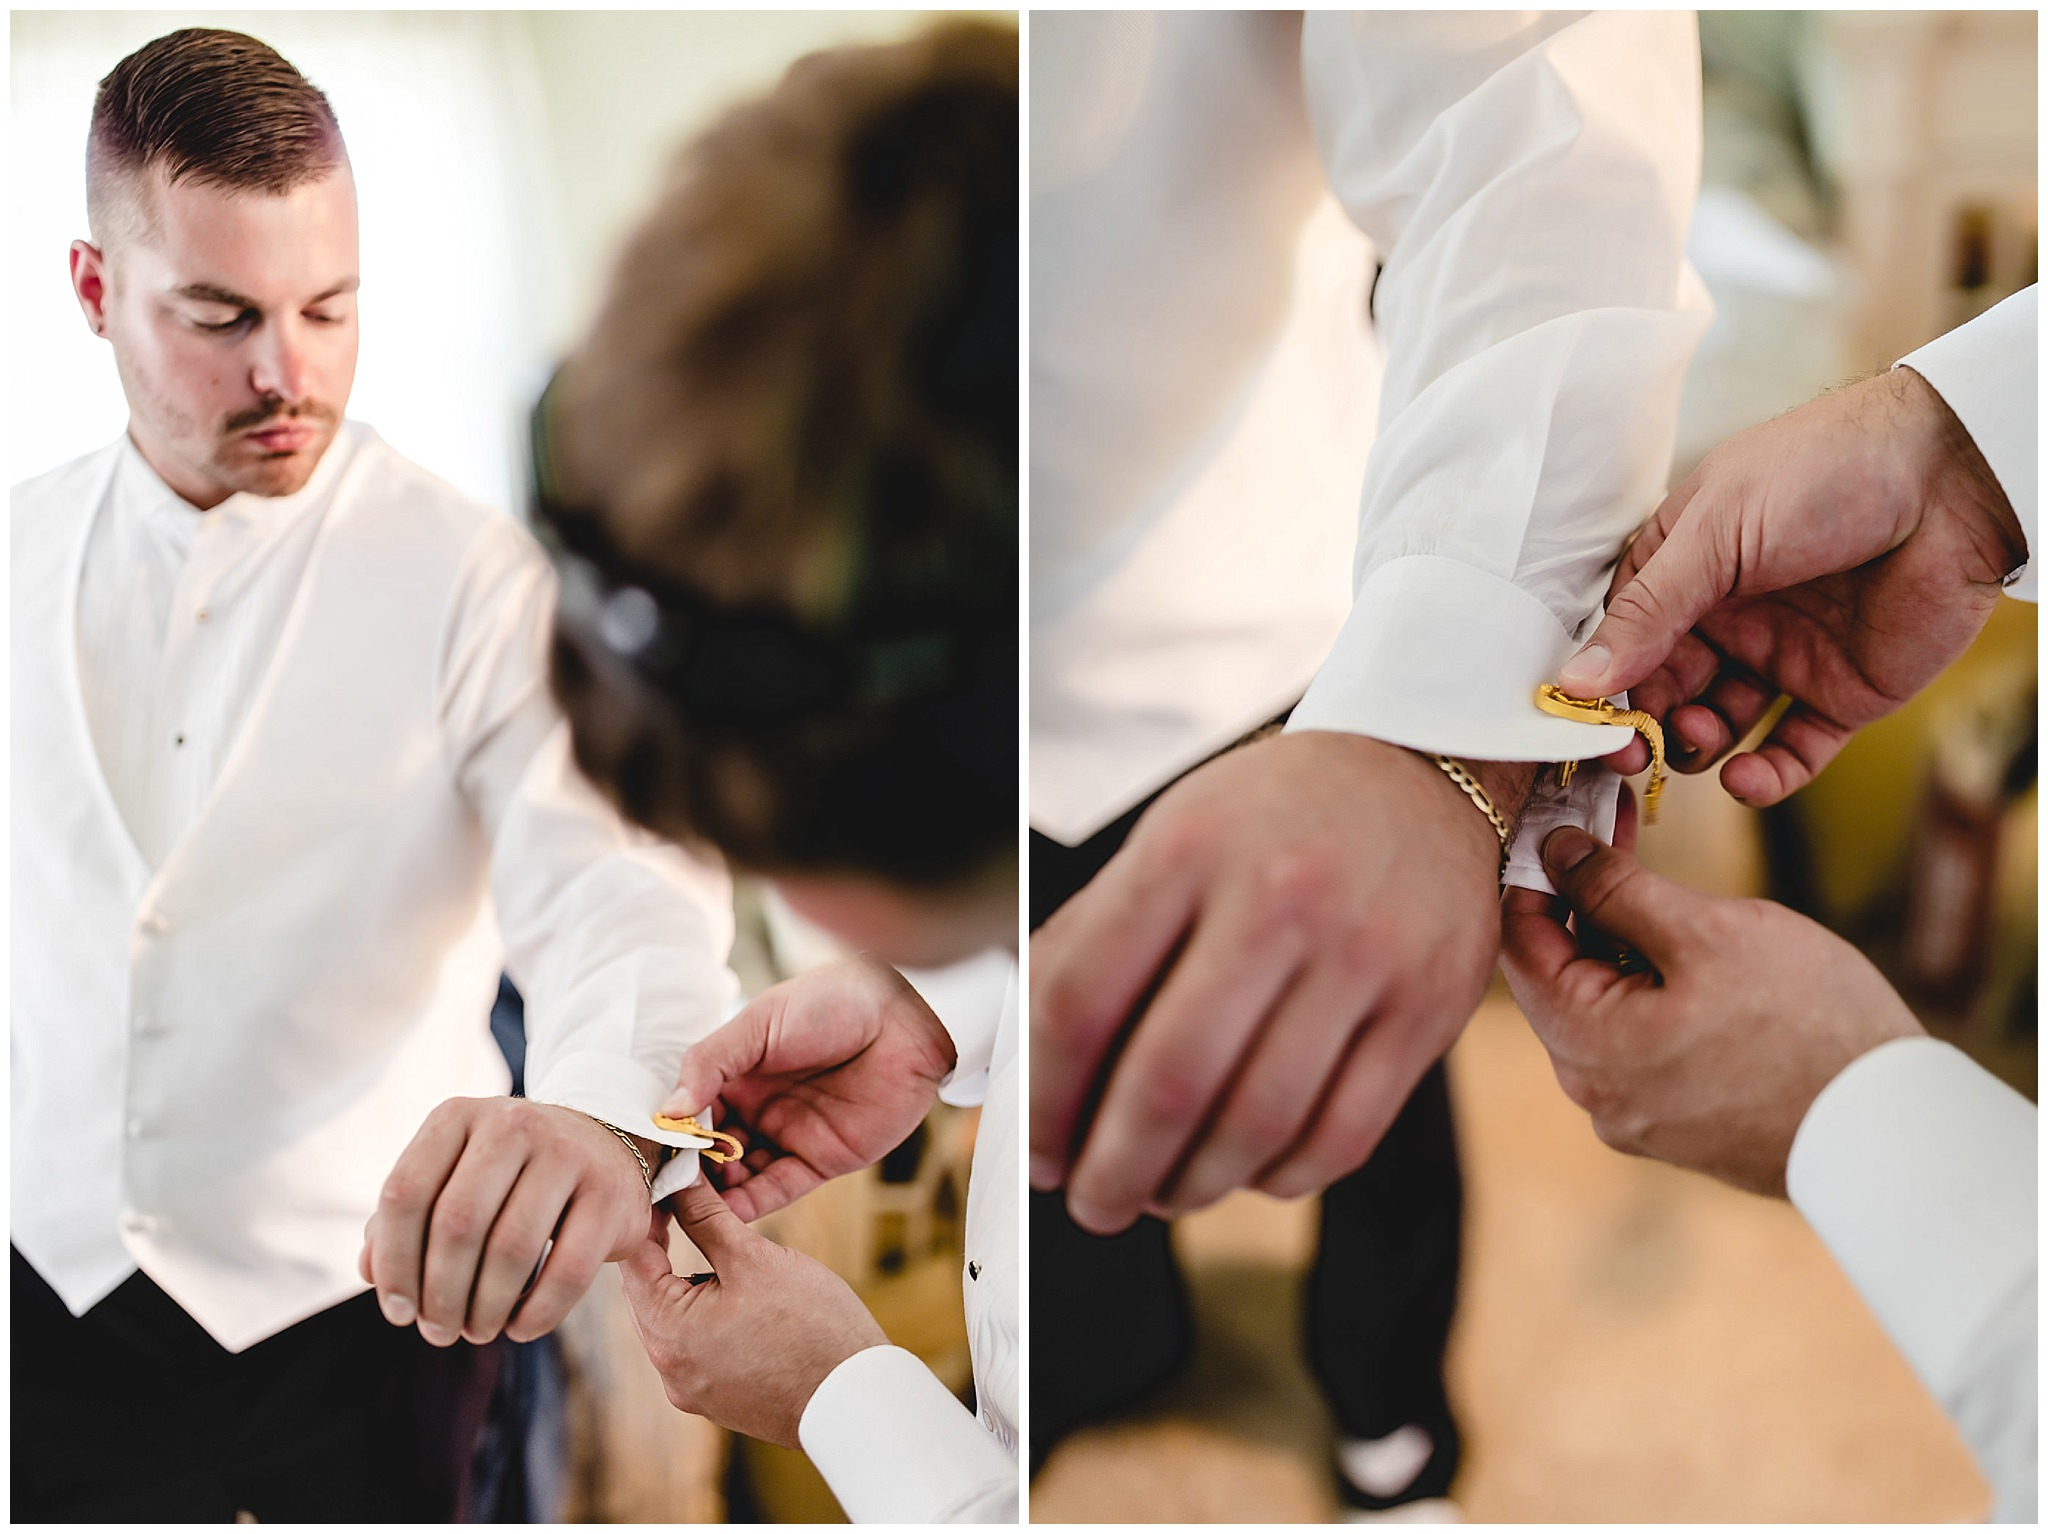 Groom's father helps put on his cufflinks before his wedding at St. Titus Church